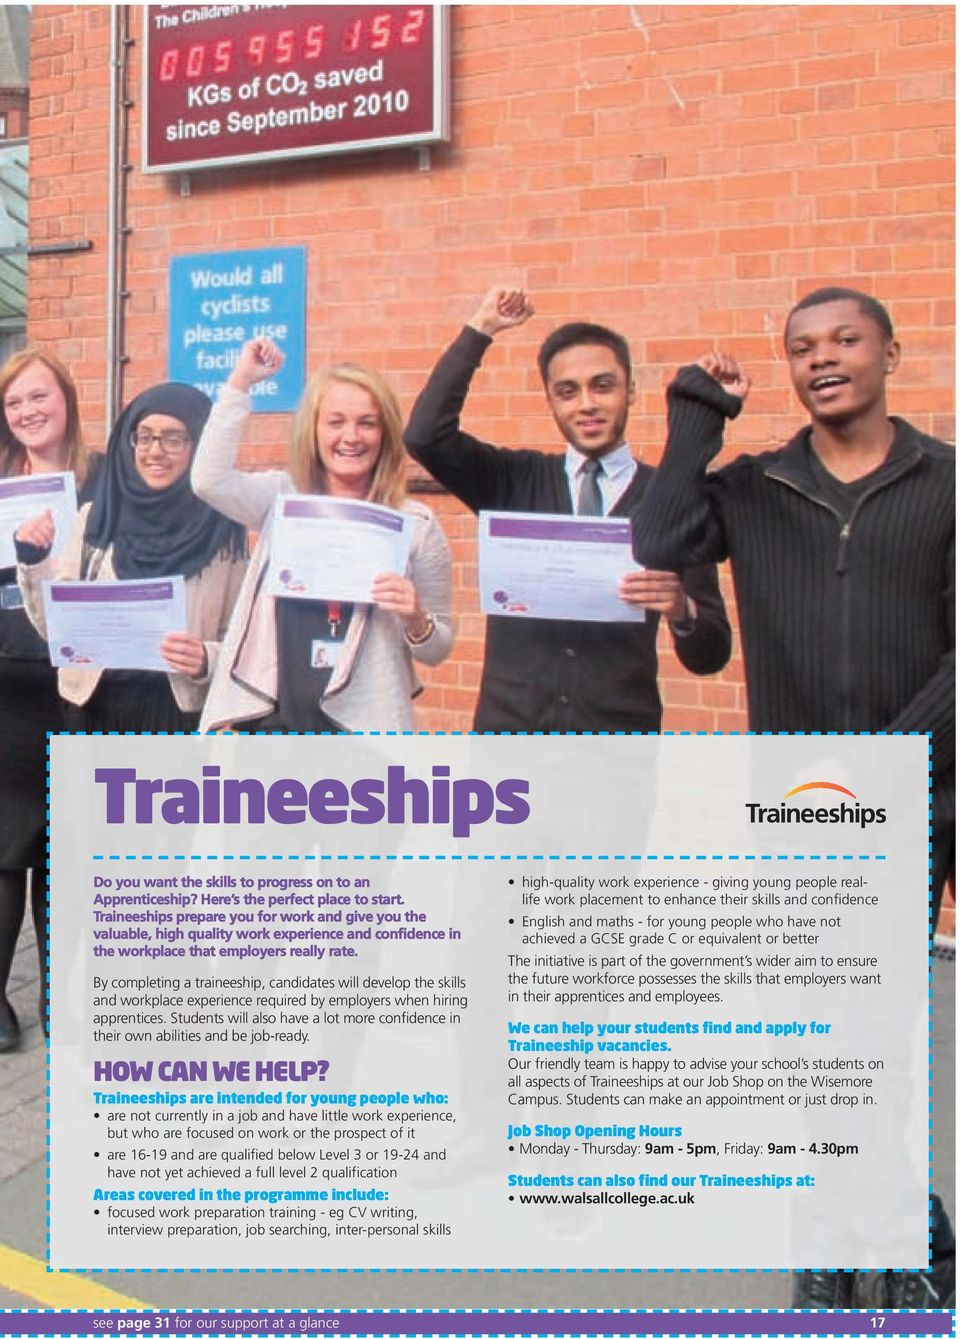 By completing a traineeship, candidates will develop the skills and workplace experience required by employers when hiring apprentices.